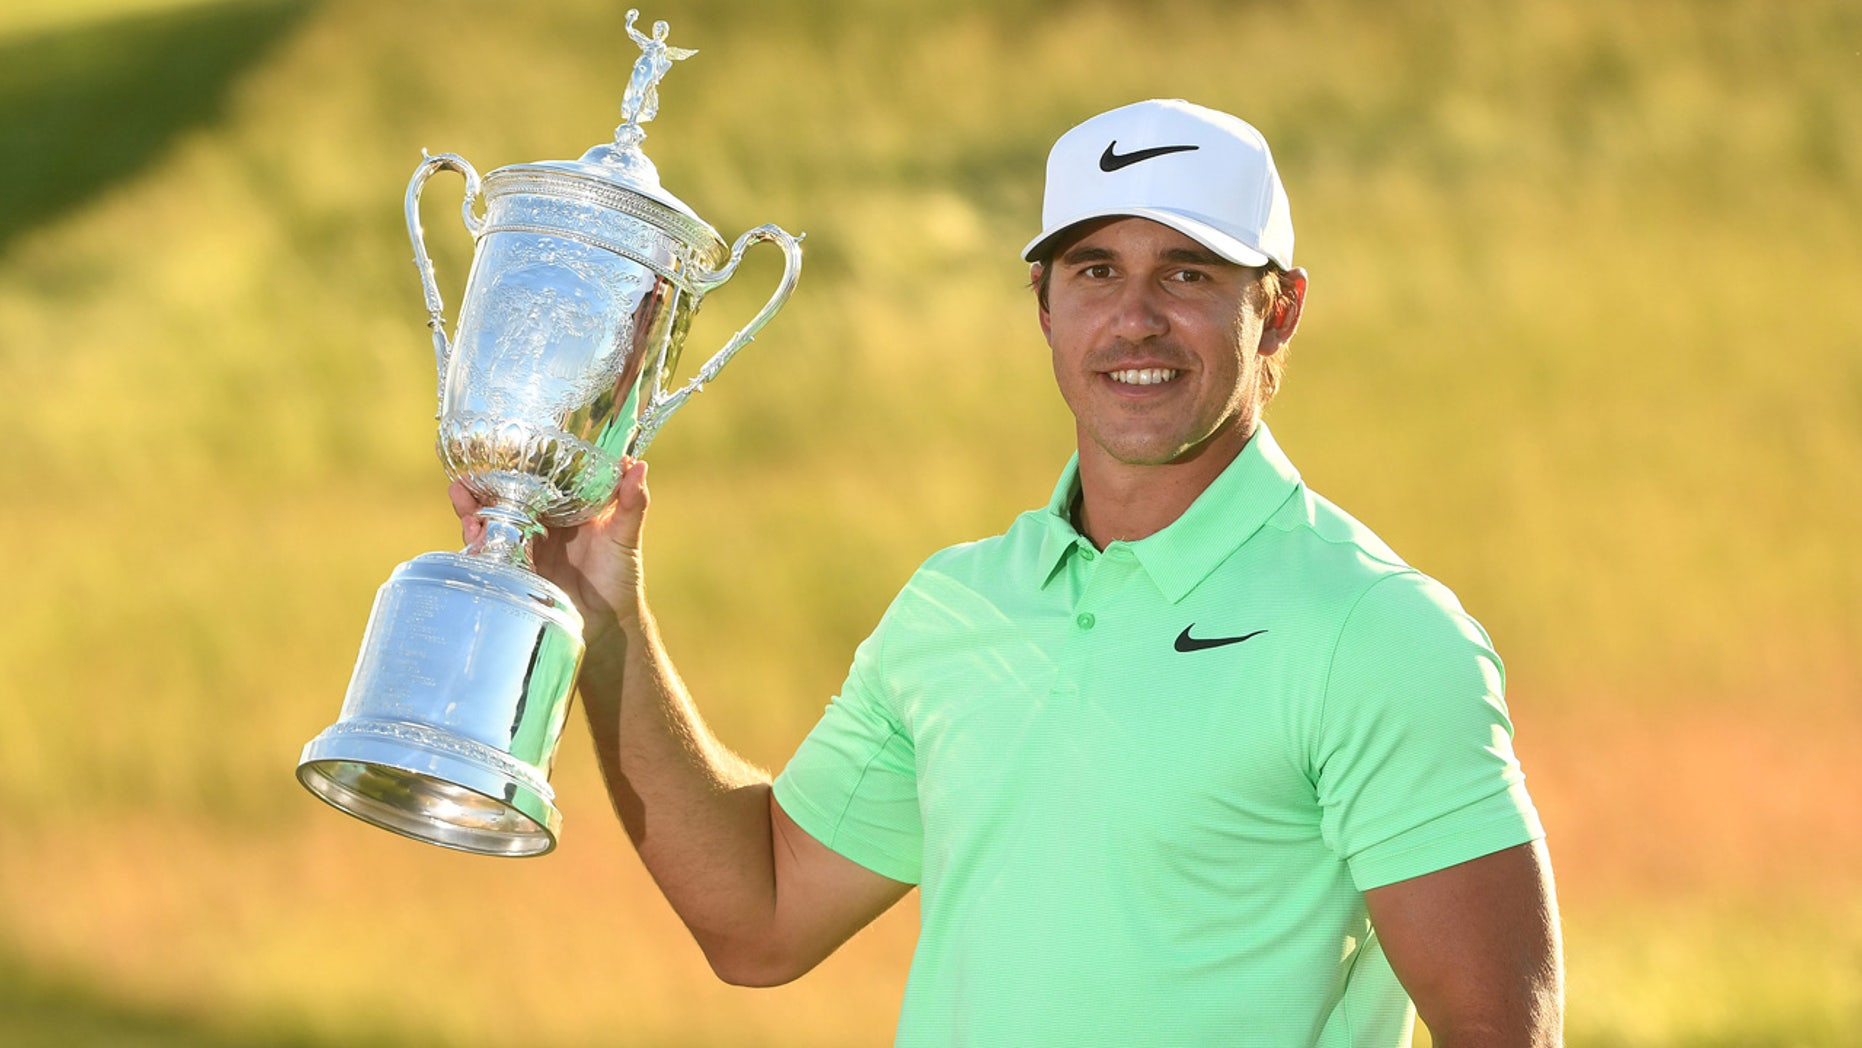 Brooks Koepka poses with the trophy after winning the U.S. Open golf tournament at Erin Hills.